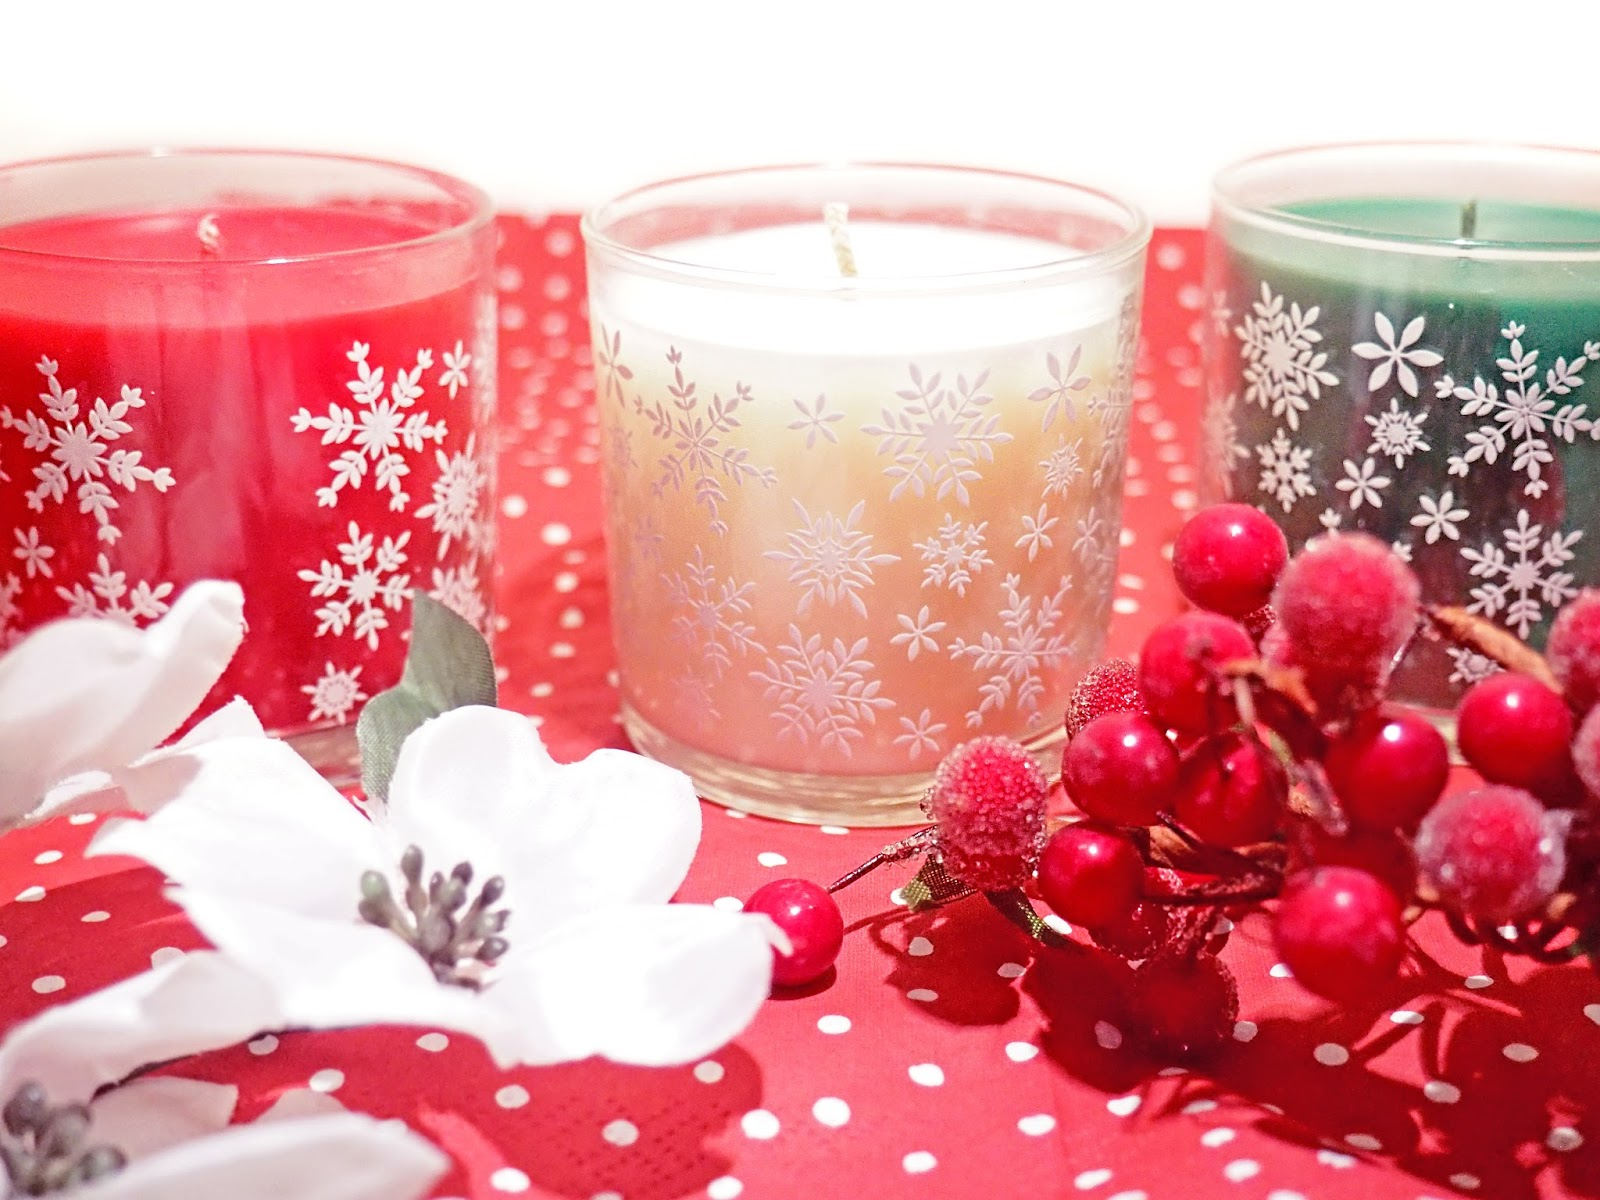 PartyLite Reminiscent Candle Trio Review Giveaway